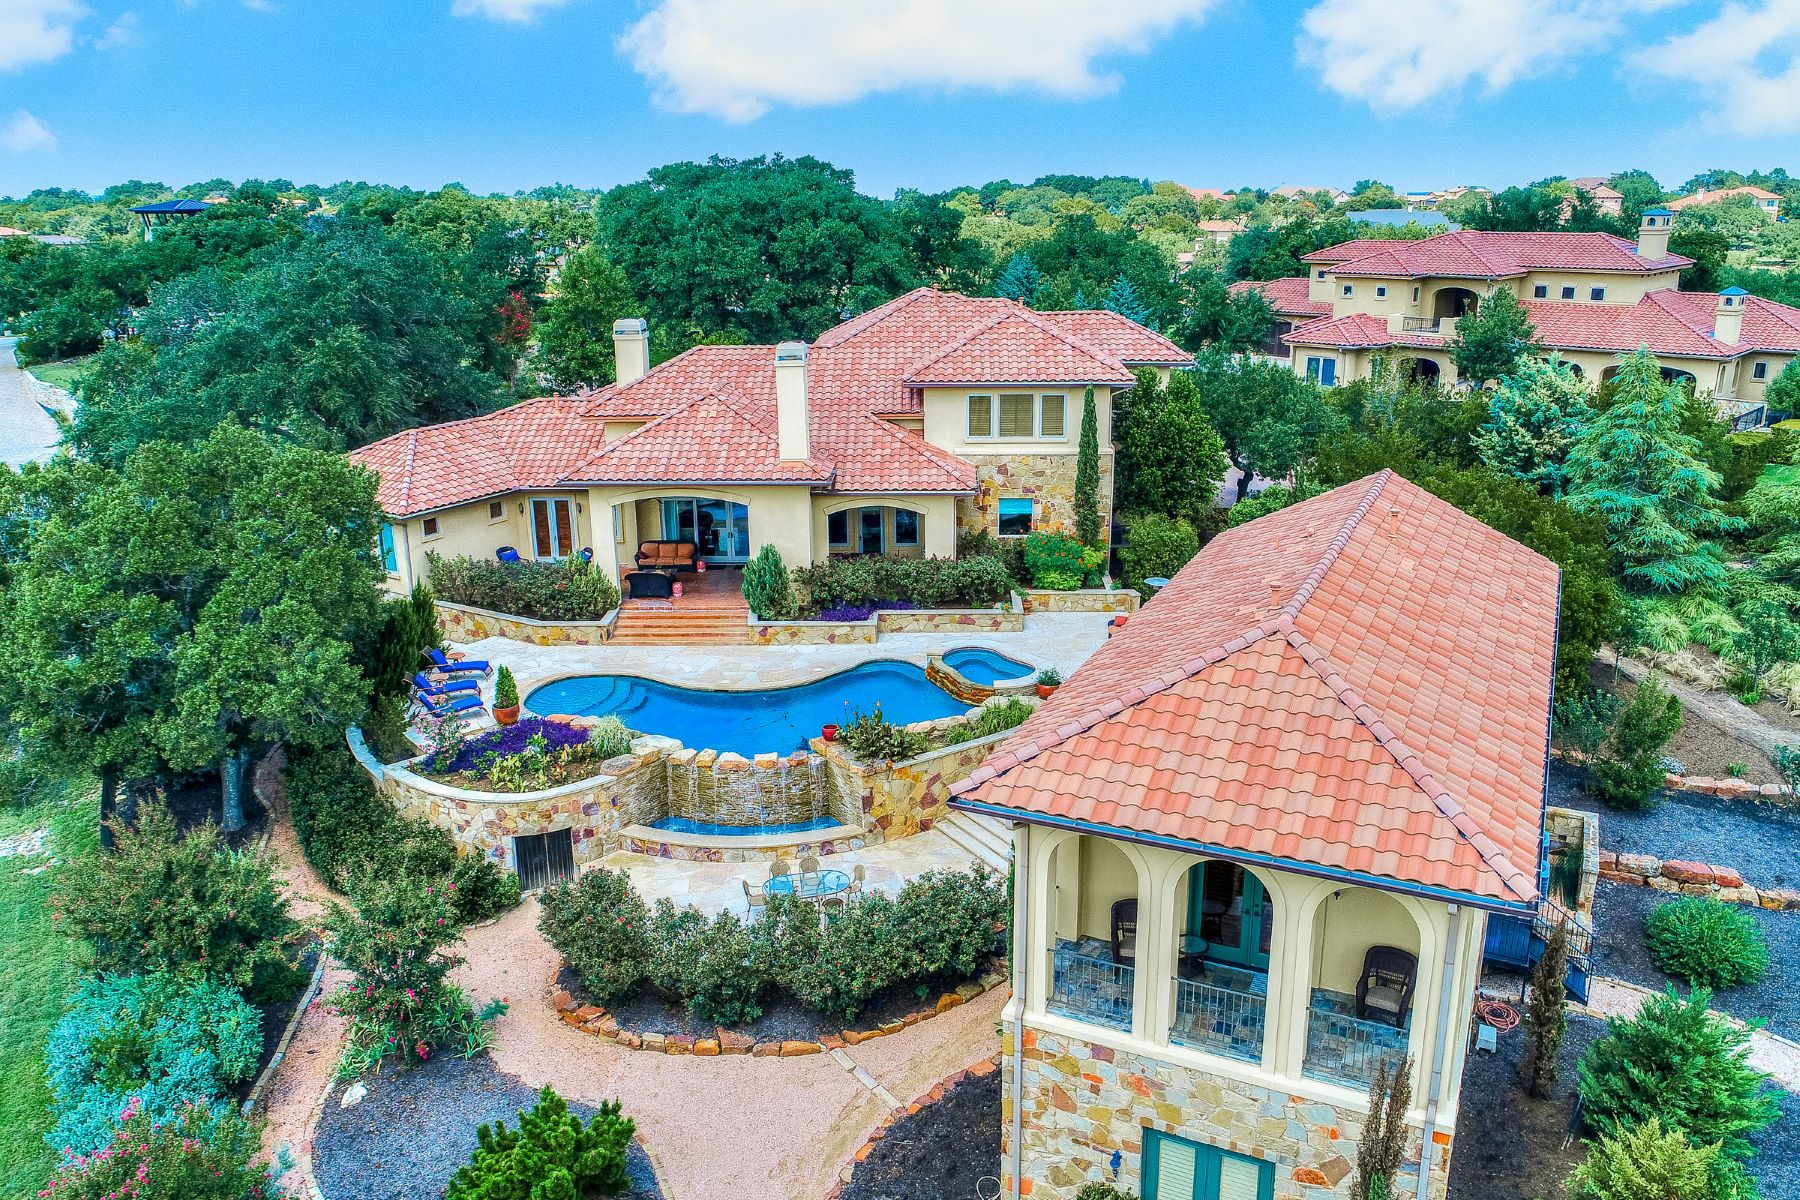 Single Family Home for Sale at Exquisite Tuscan Estate 8017 Magnolia Ridge Cv Austin, Texas 78738 United States